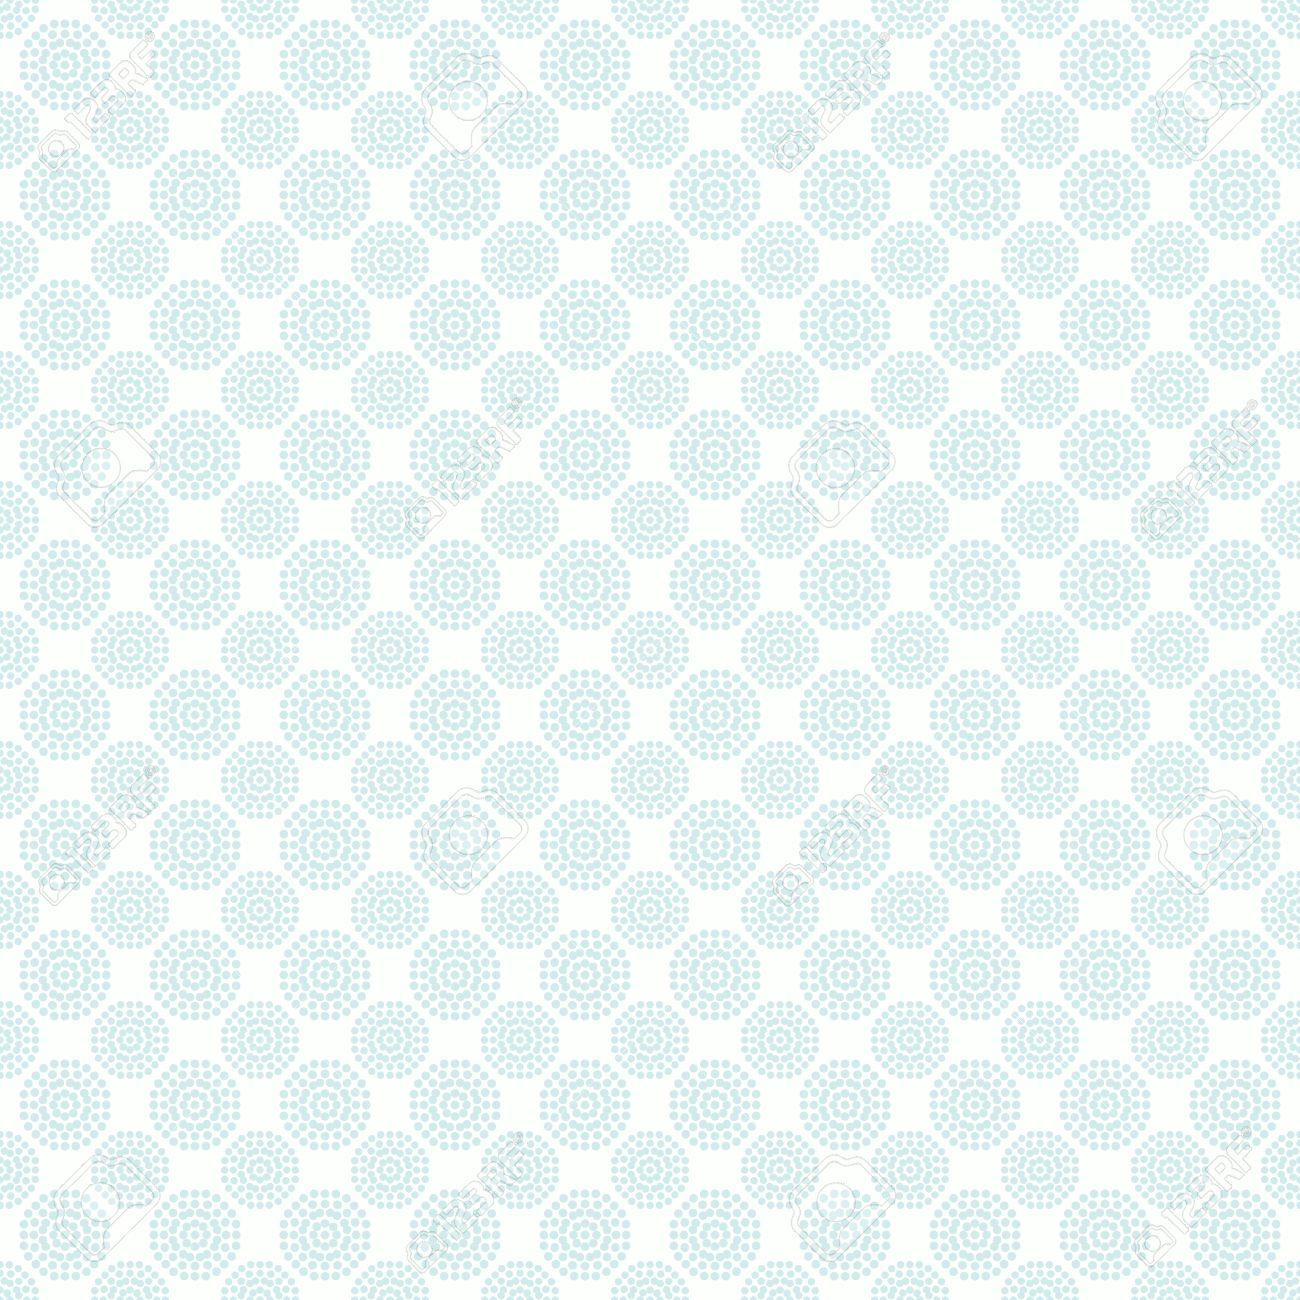 Scrapbook paper as wallpaper - Pattern Paper For Scrapbook Tiling Blue White And Brown Shabby Color Endless Texture Can Be